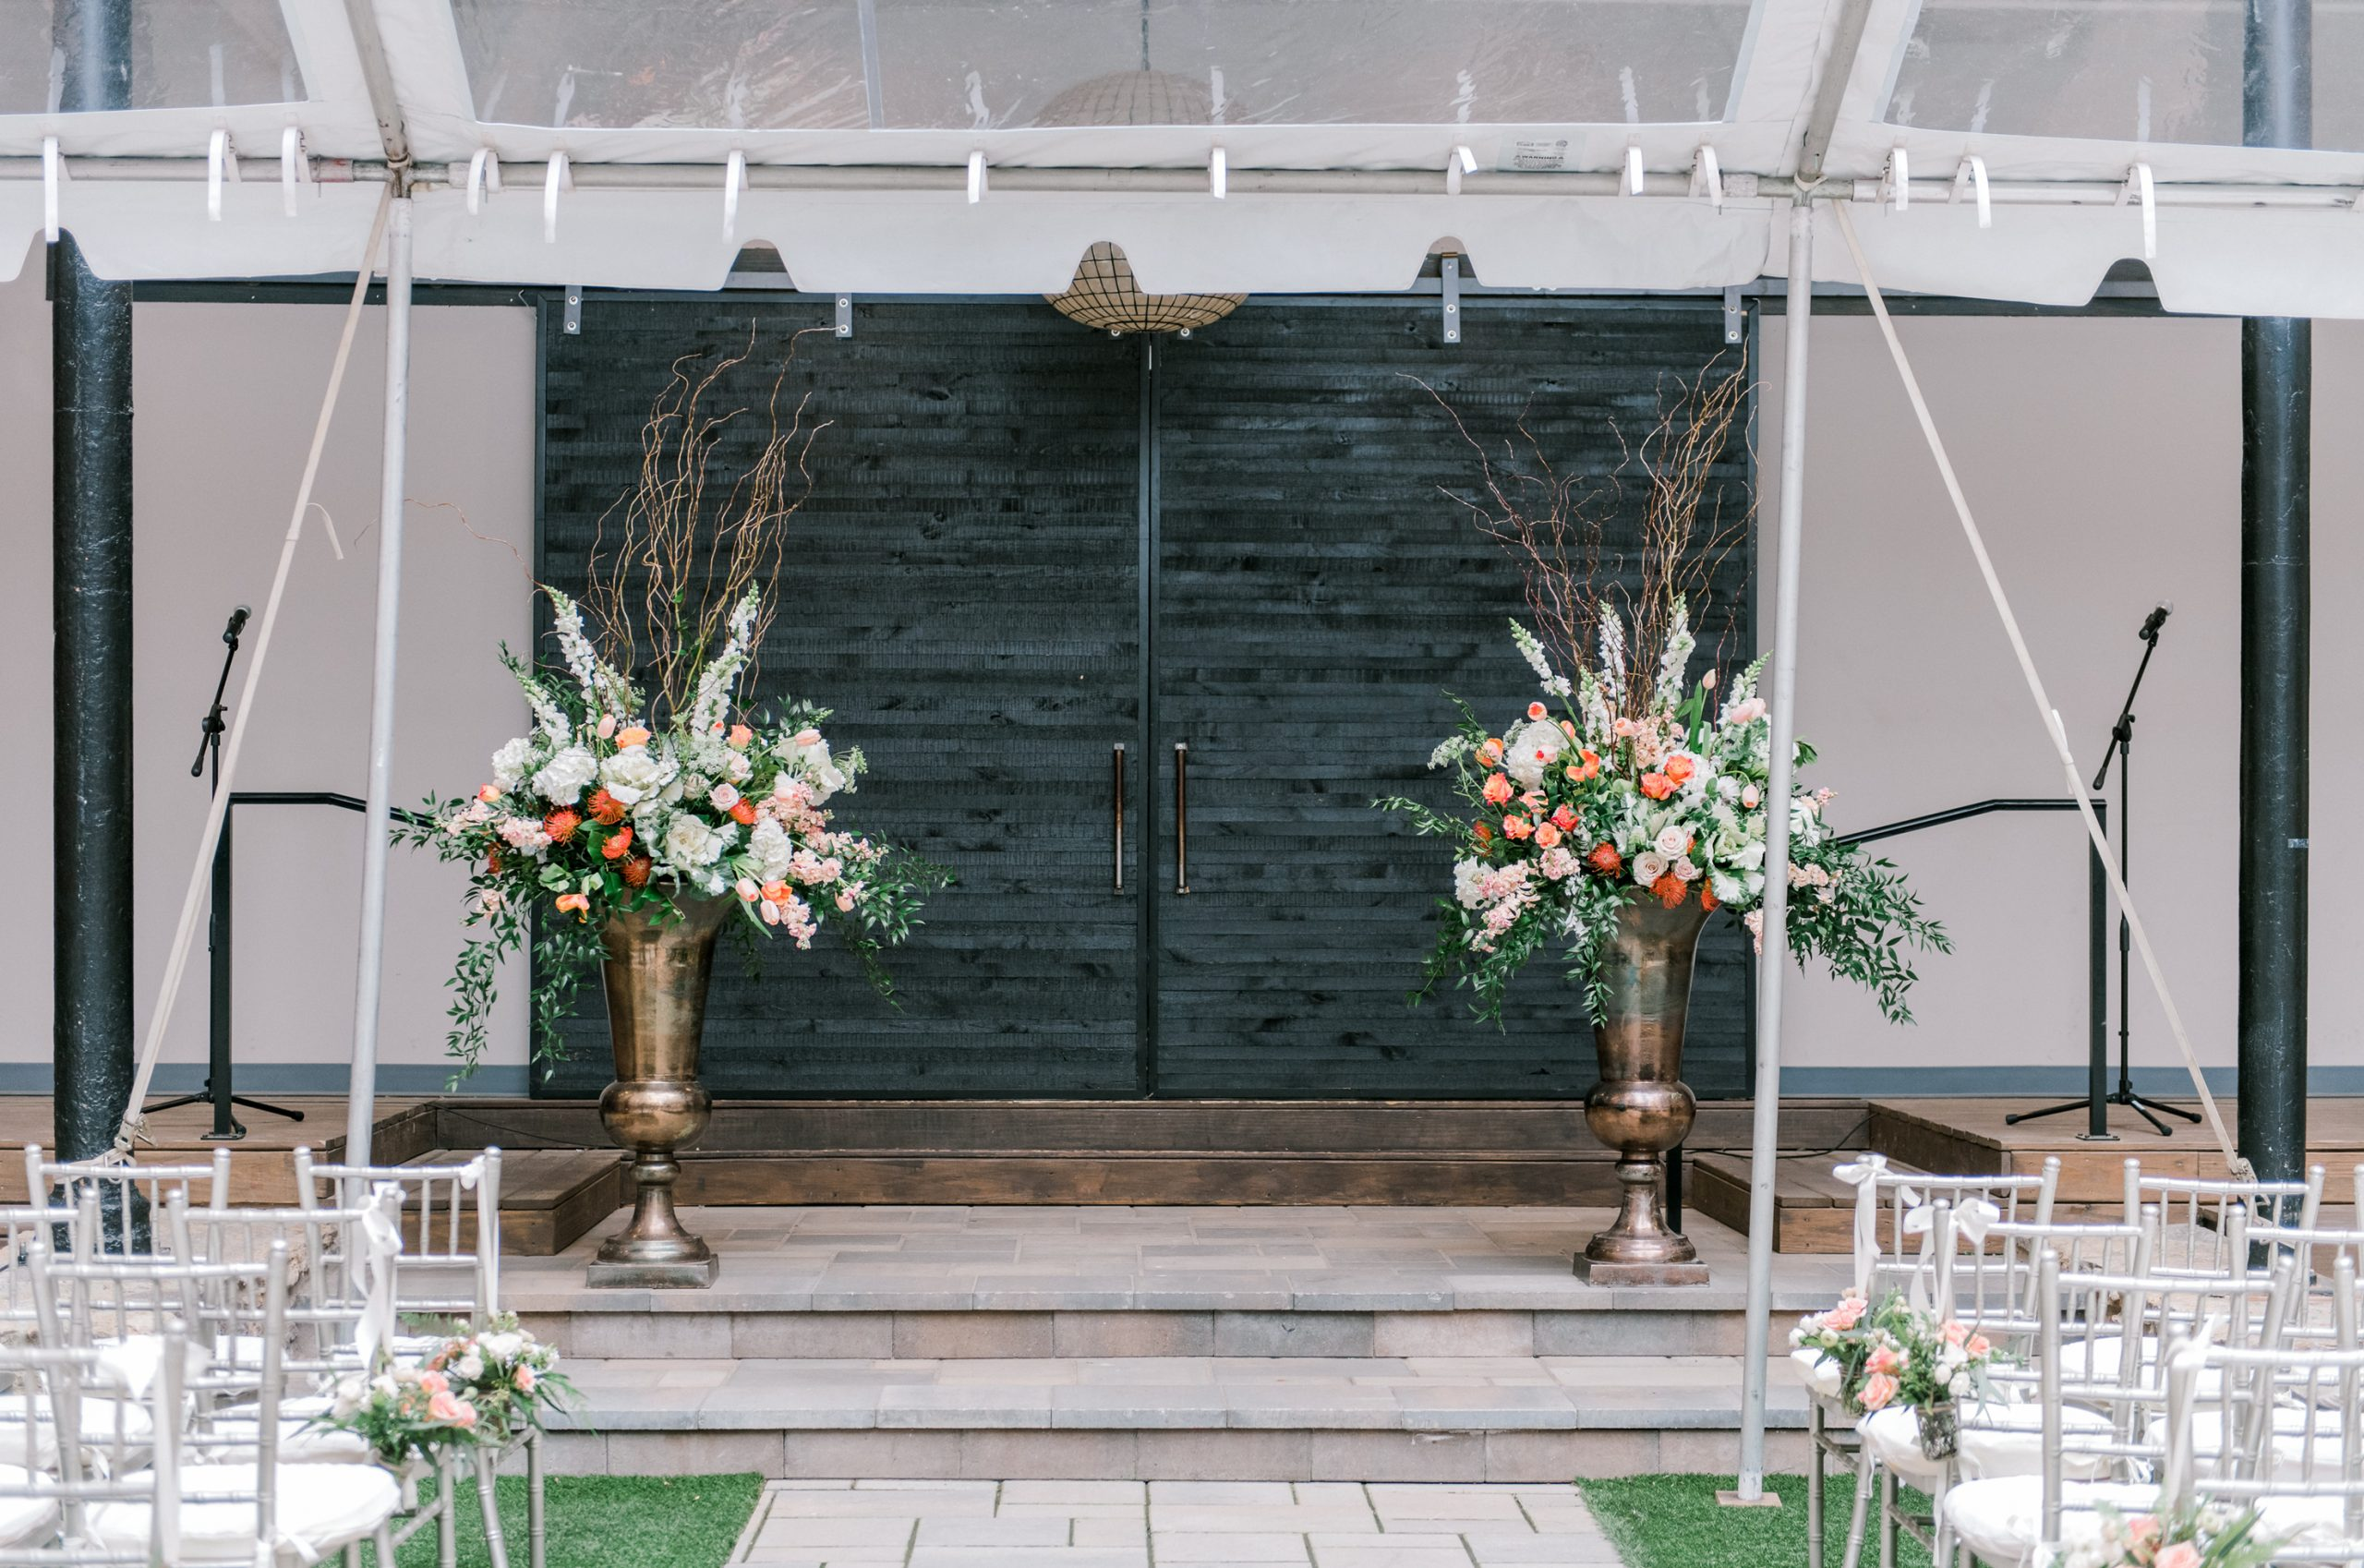 Large scale lush ceremony florals designed in massive bronze urns with white, peach, and green blooms, accented by bold orange flowers.